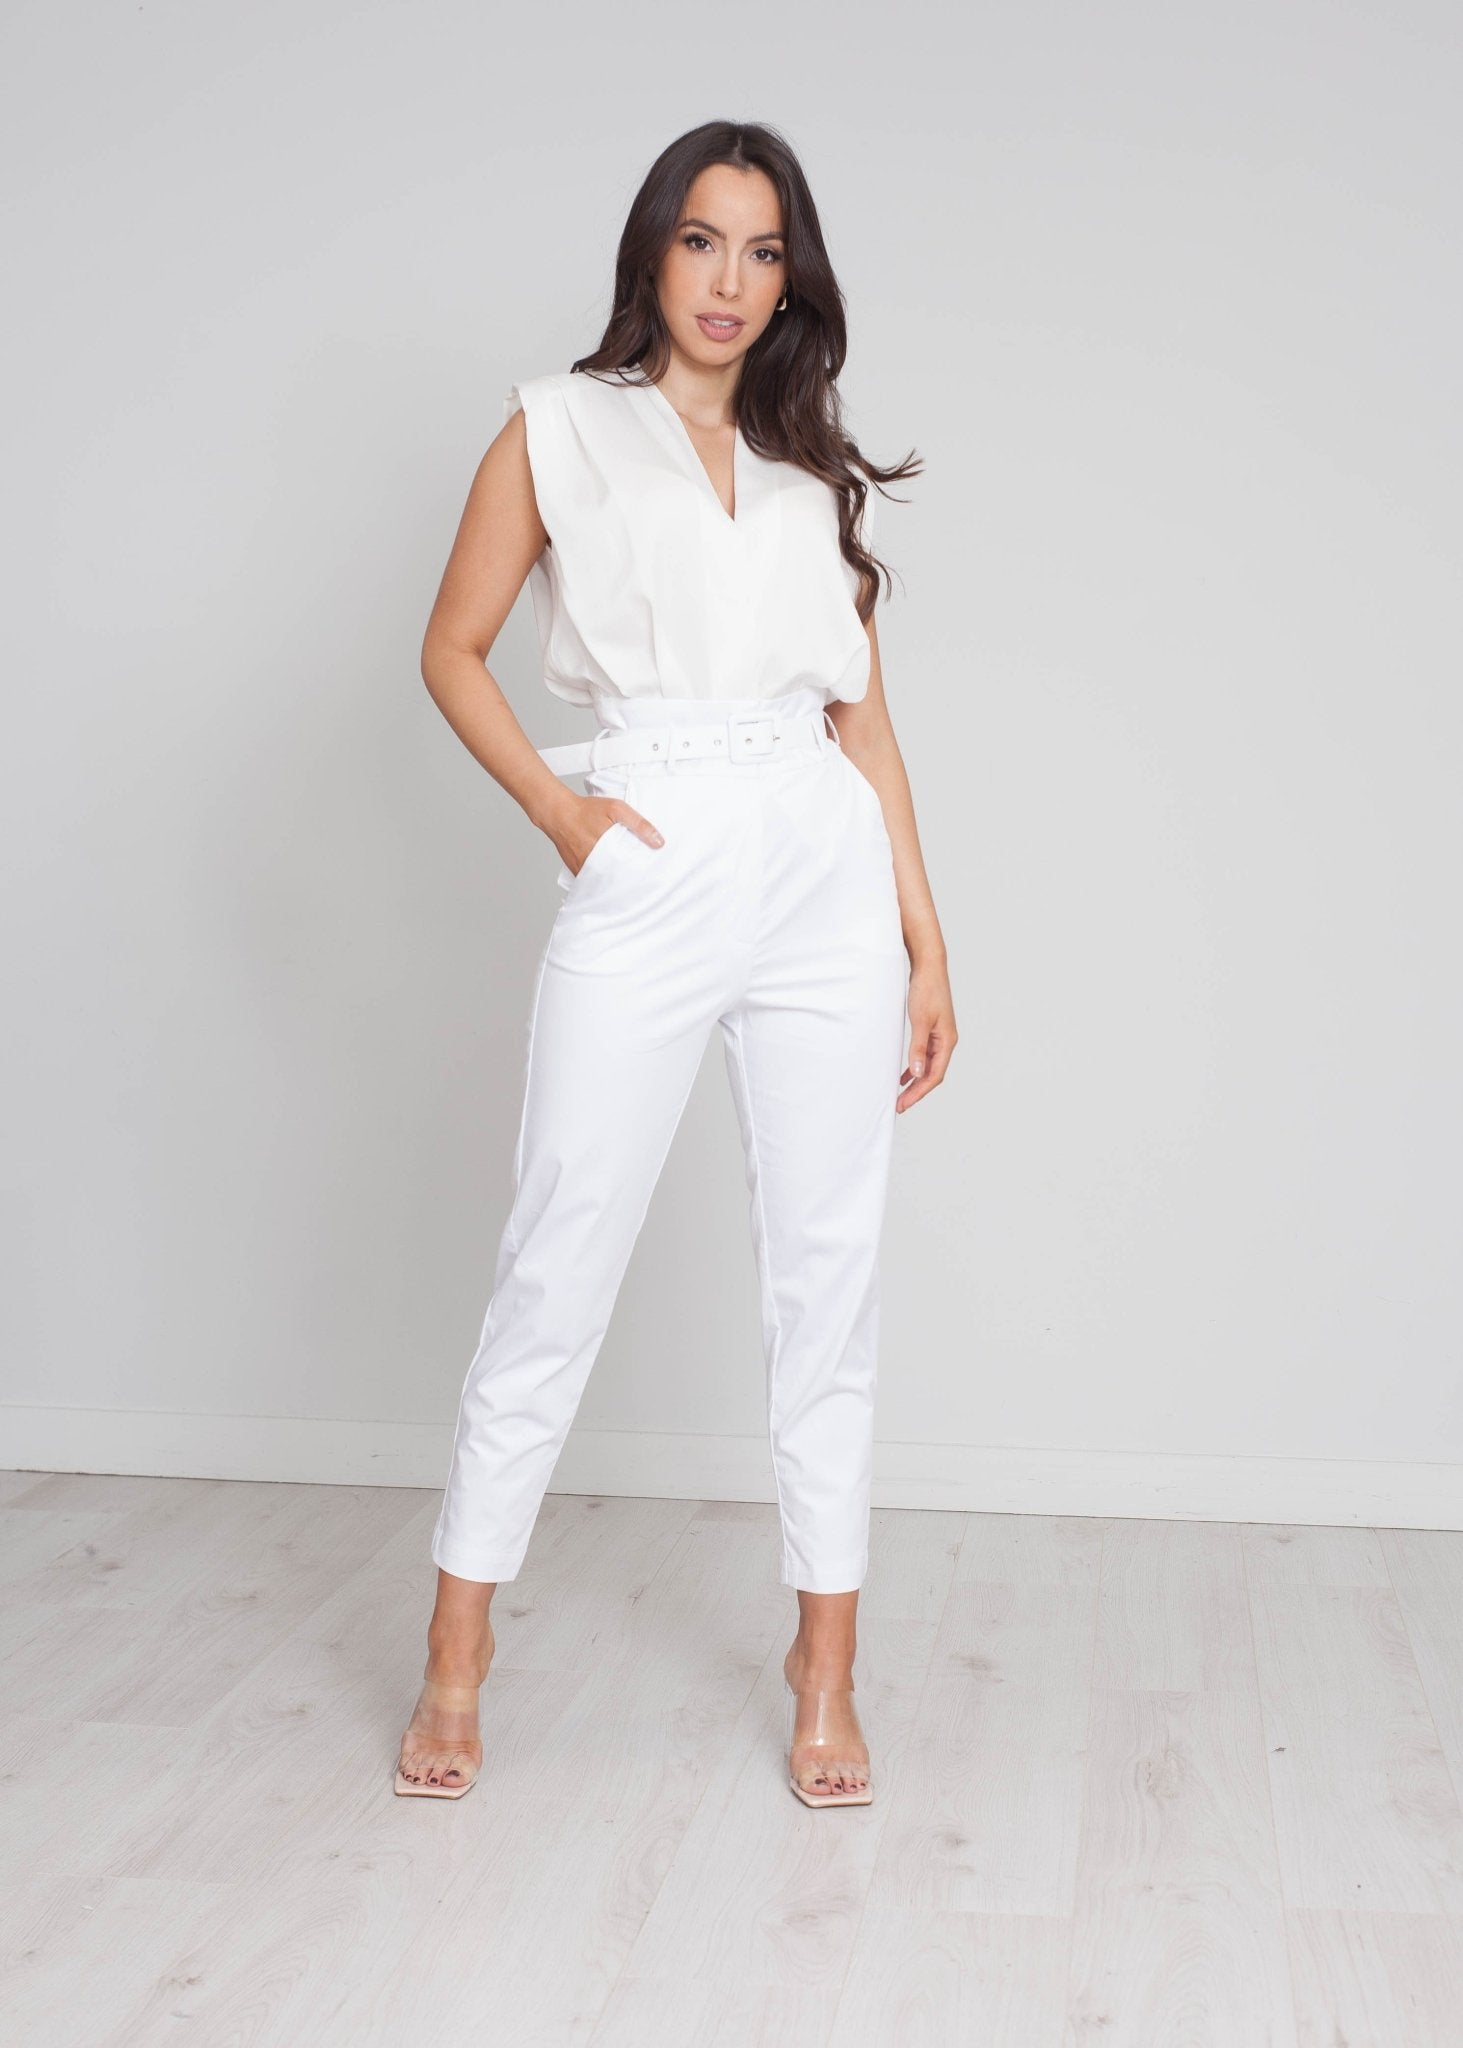 Sophia Belted Jumpsuit In White - The Walk in Wardrobe